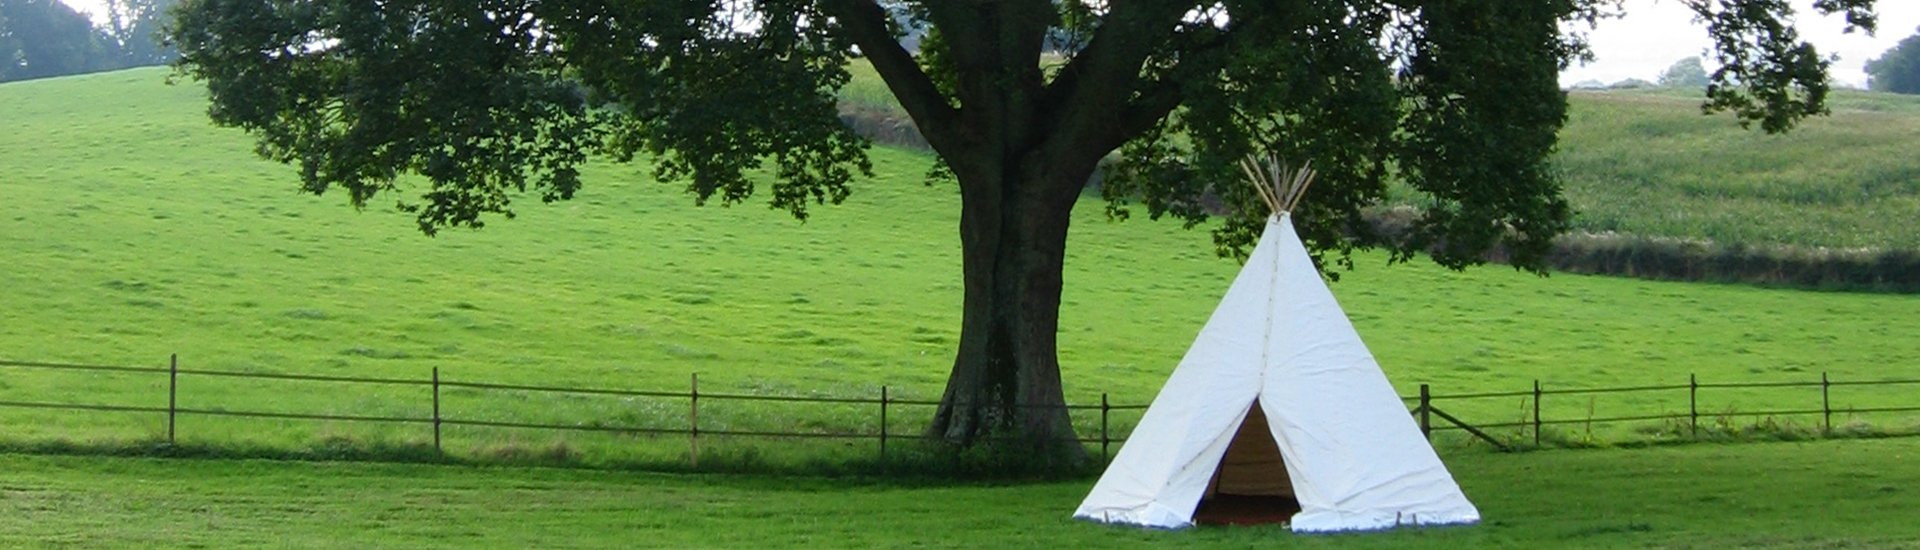 Wigwam Marquees traditional canvas party marquee hire Surrey round and Round Ended luxury marquees 5